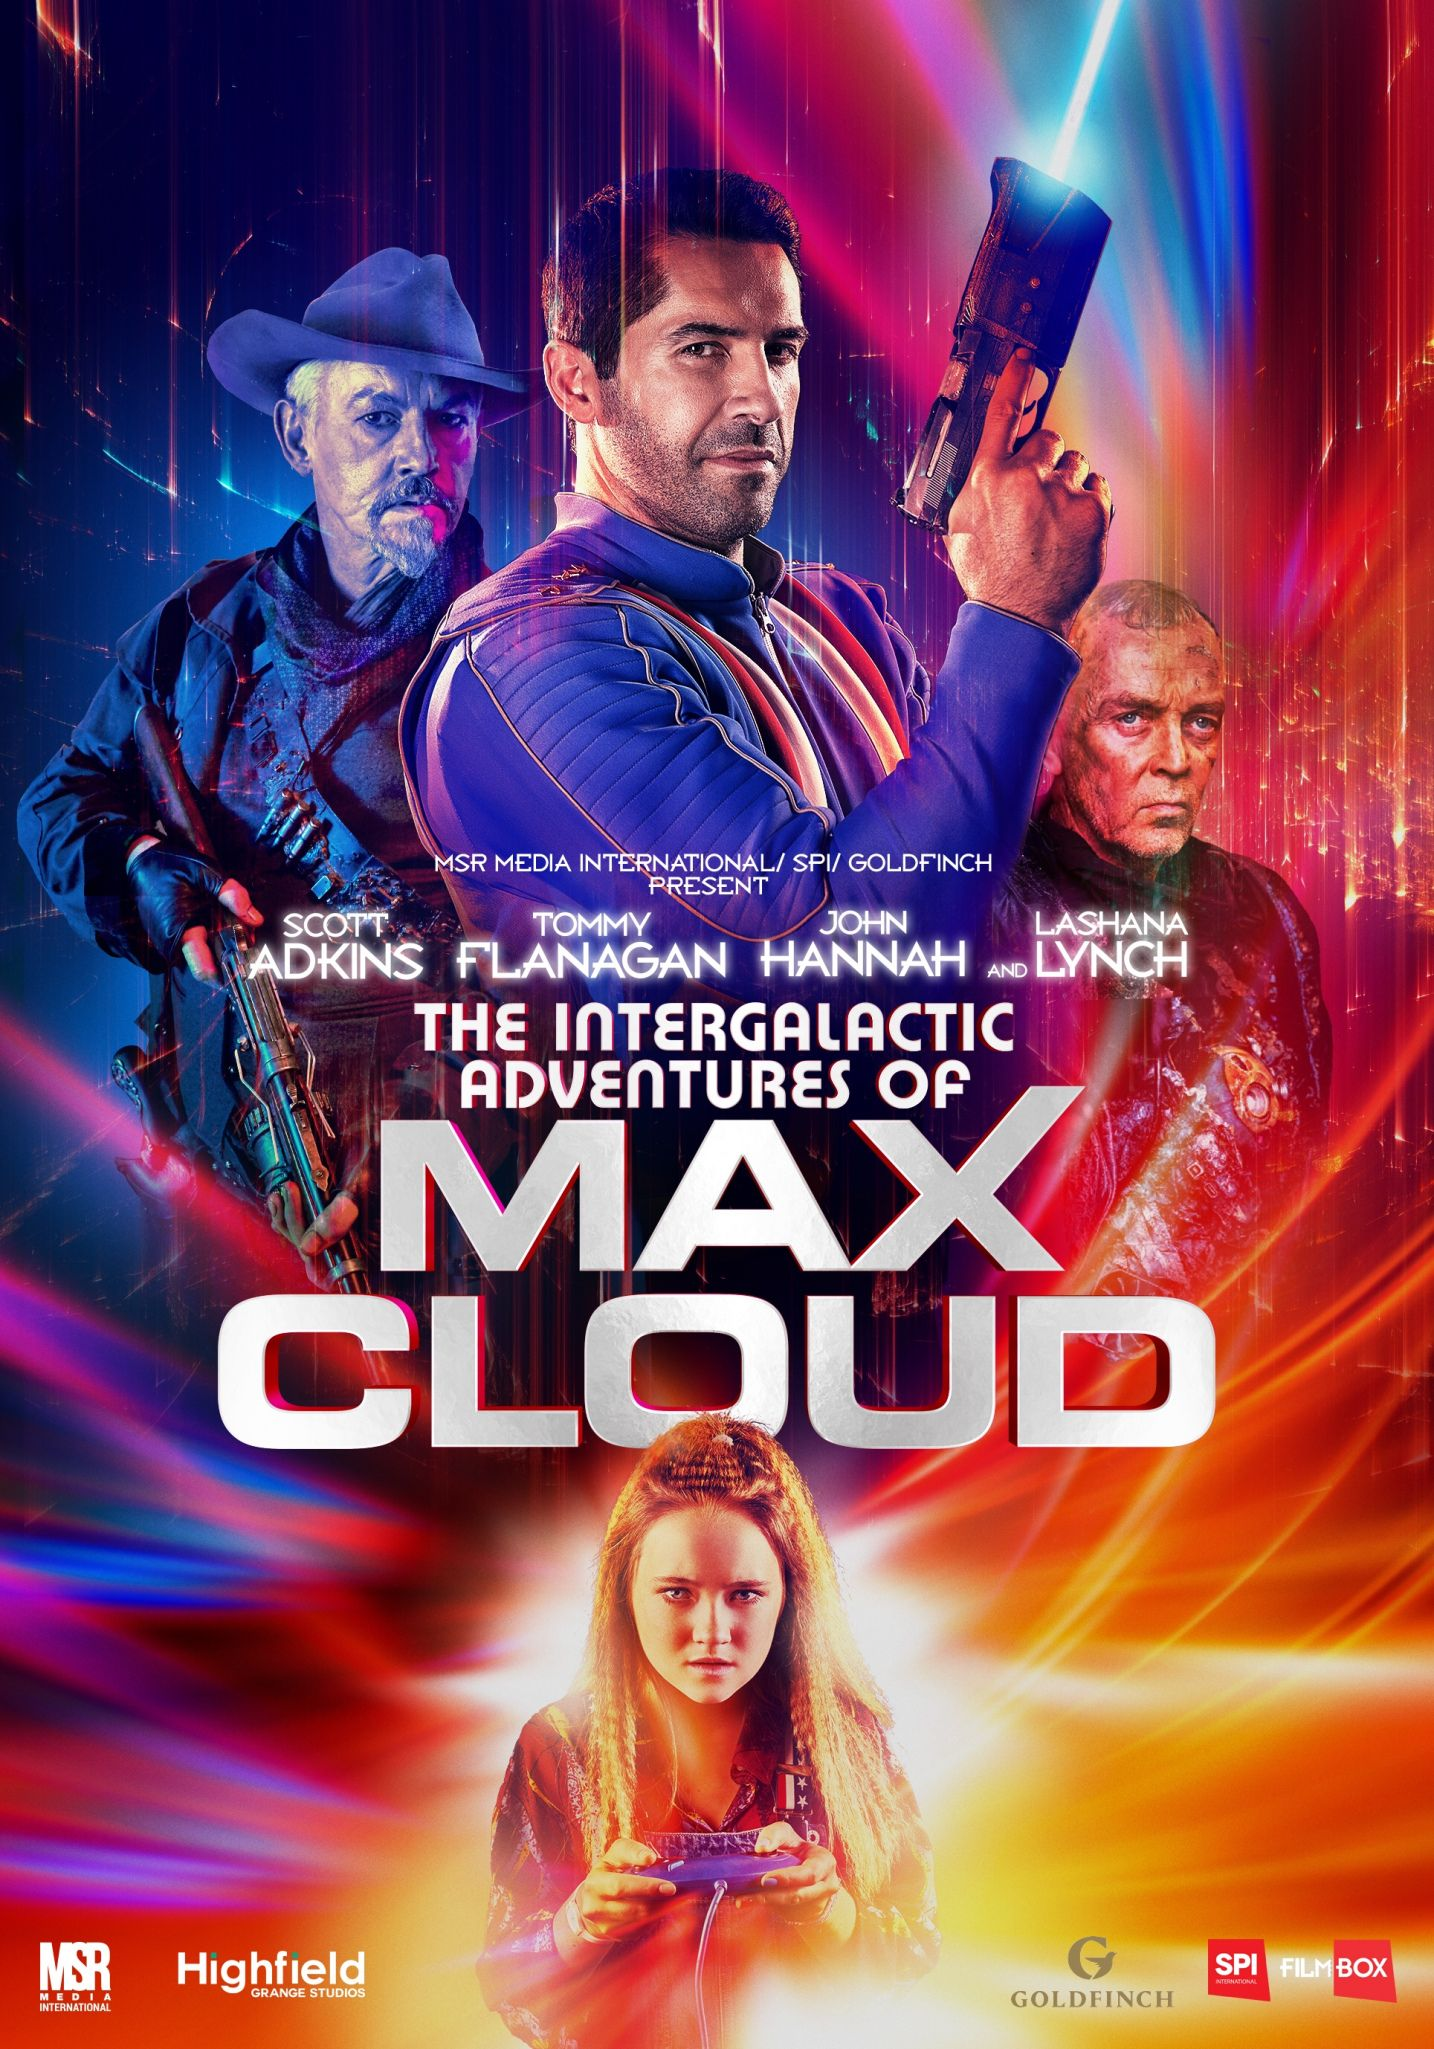 The Intergalactic Adventures Of Max Cloud Fresh Images Drop For The Upcoming Scott Adkins Sci Fi Action Com In 2020 The Daughter Movie Action Movie Stars Scott Adkins